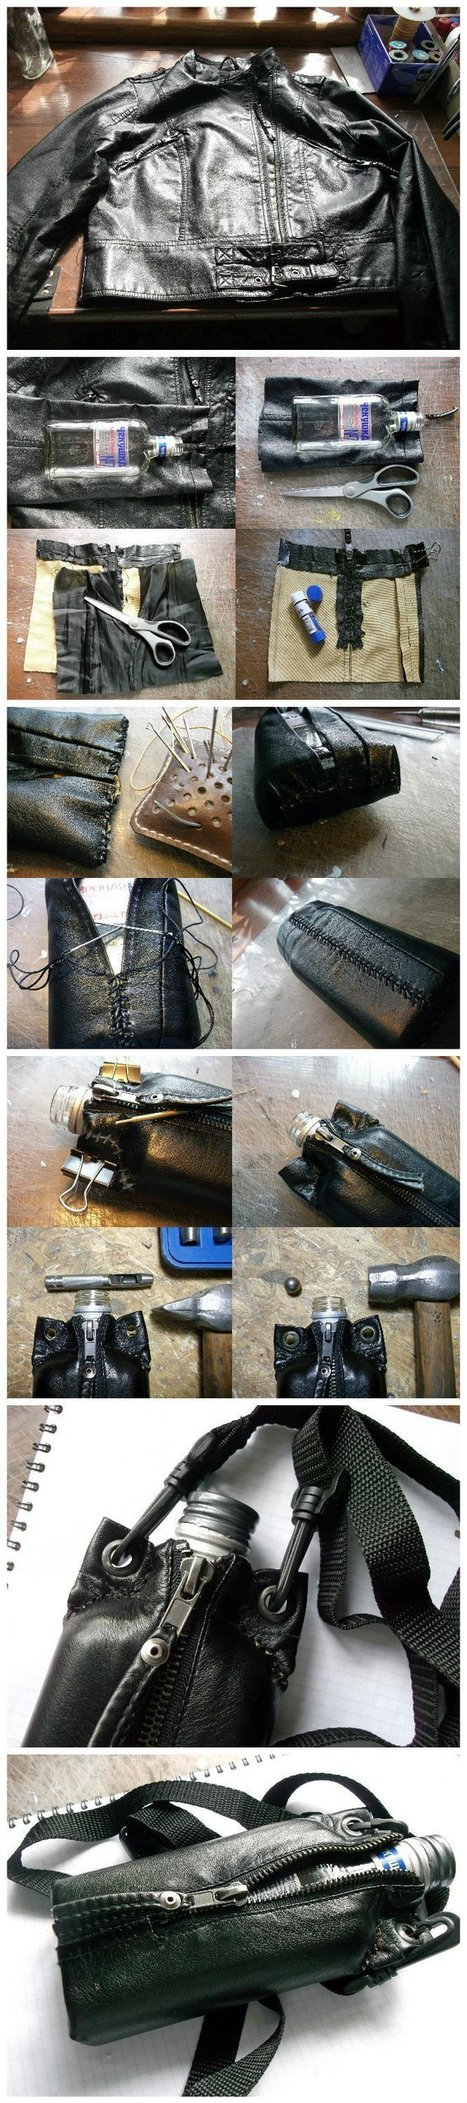 Making Flasks From Used Glass Bottles (How To)   1001 Recycling Ideas !   Scoop.it